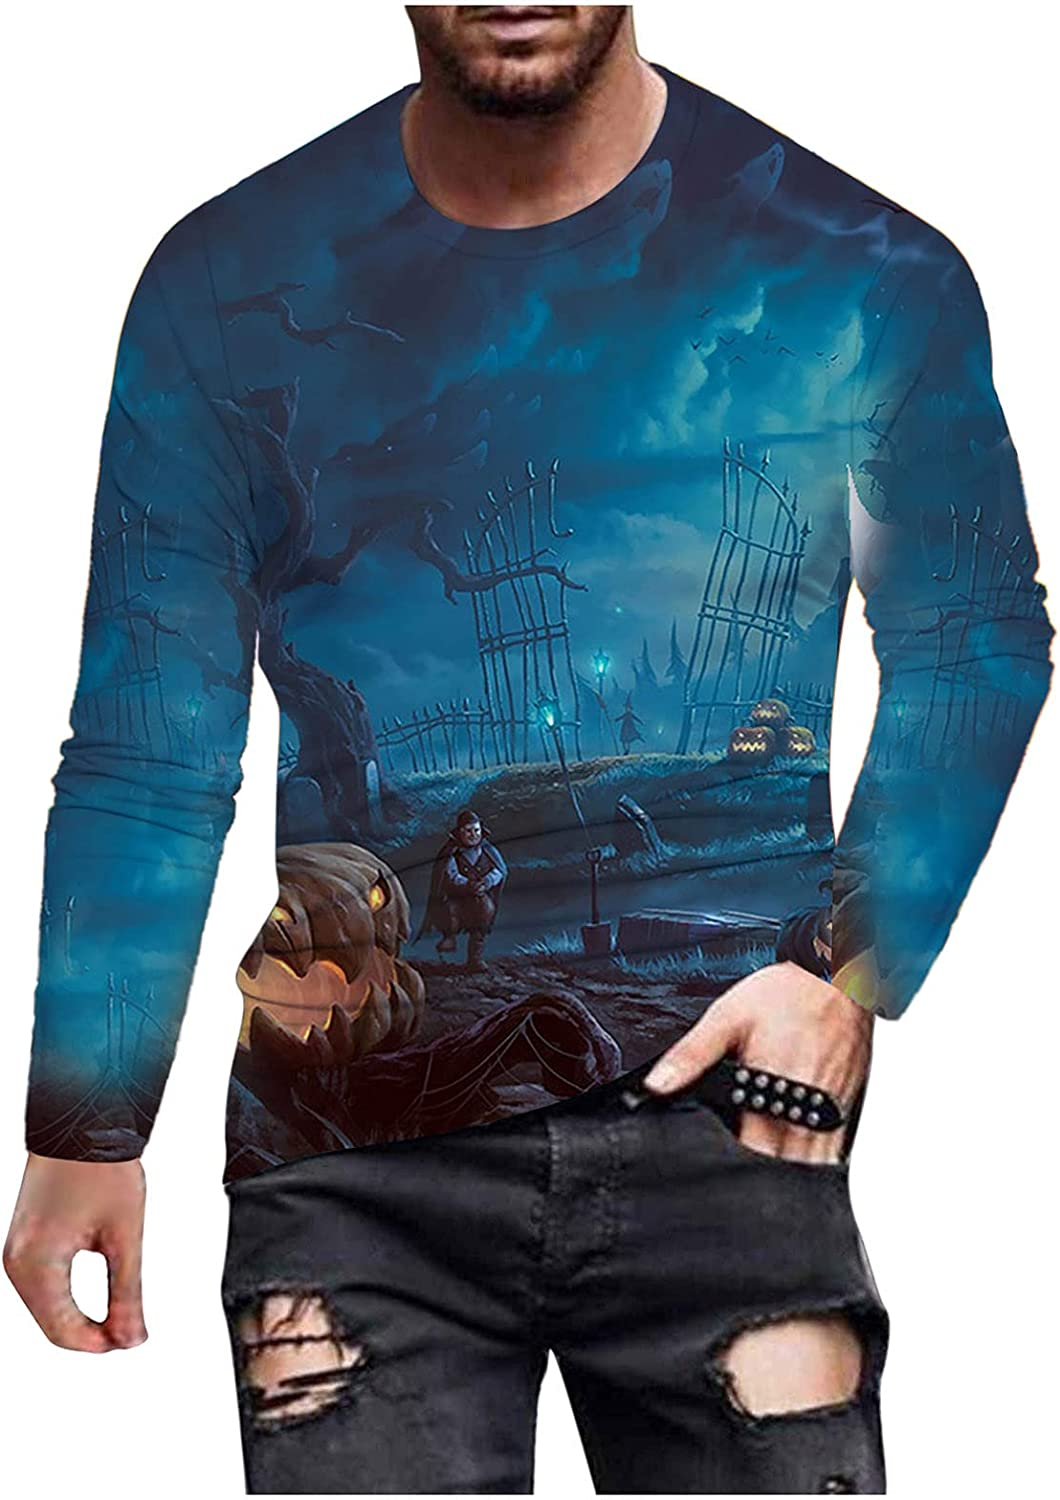 xoxing Halloween Shirts for Men Casual Autumn Plus Size 3D Printed Long Sleeve Crew Neck Tops Loose Blouse Pullovers